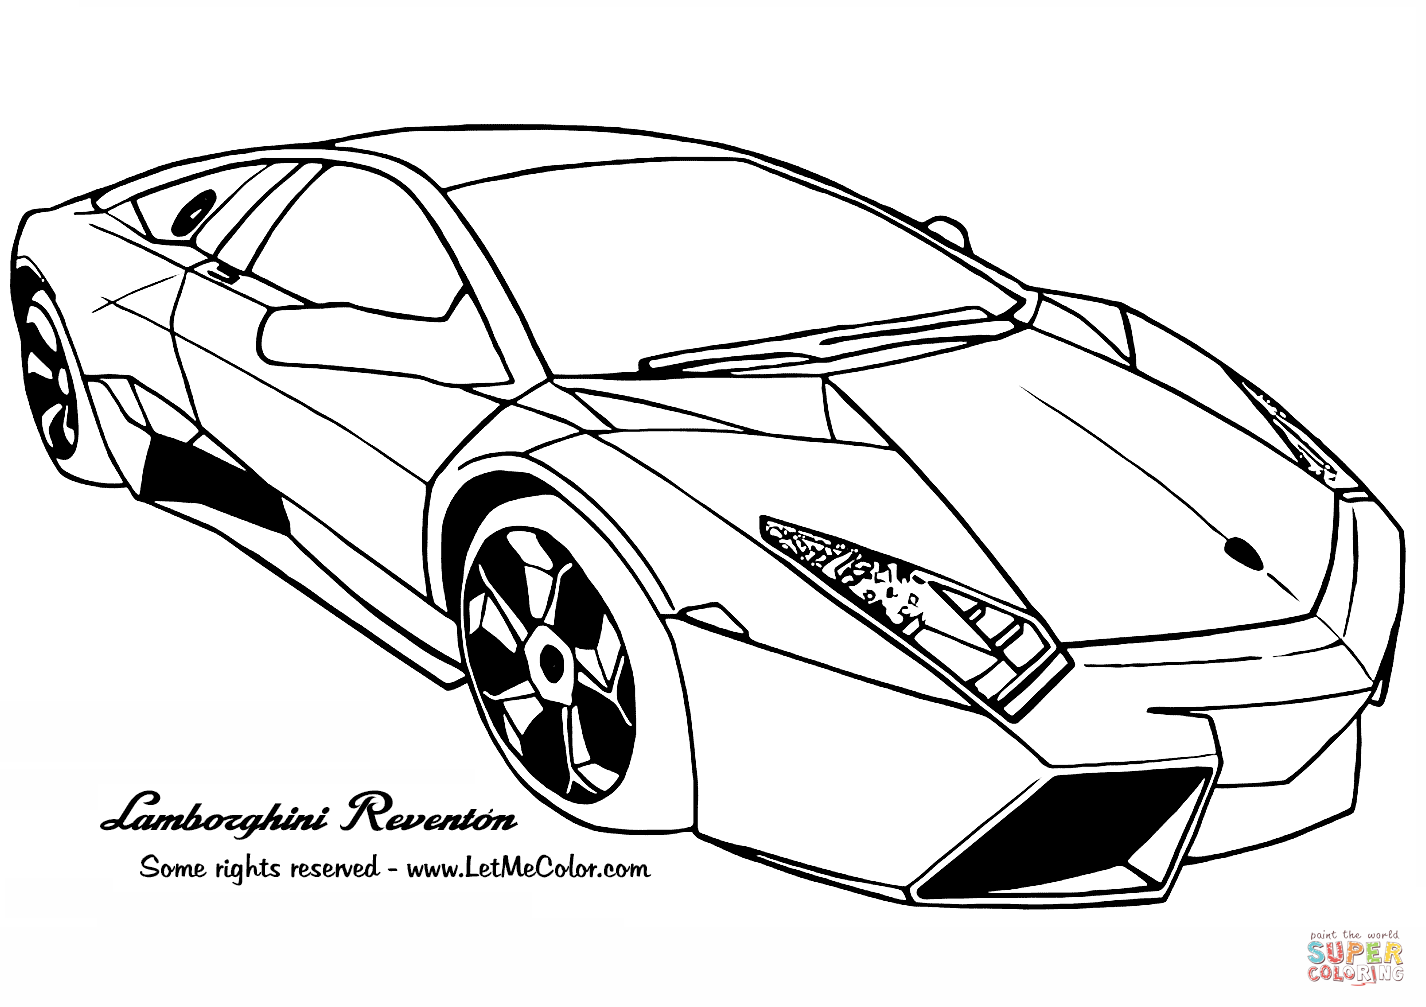 Lamborghini Reventon Super Coloring In 2020 Cars Coloring Pages Car Colors Coloring Pages